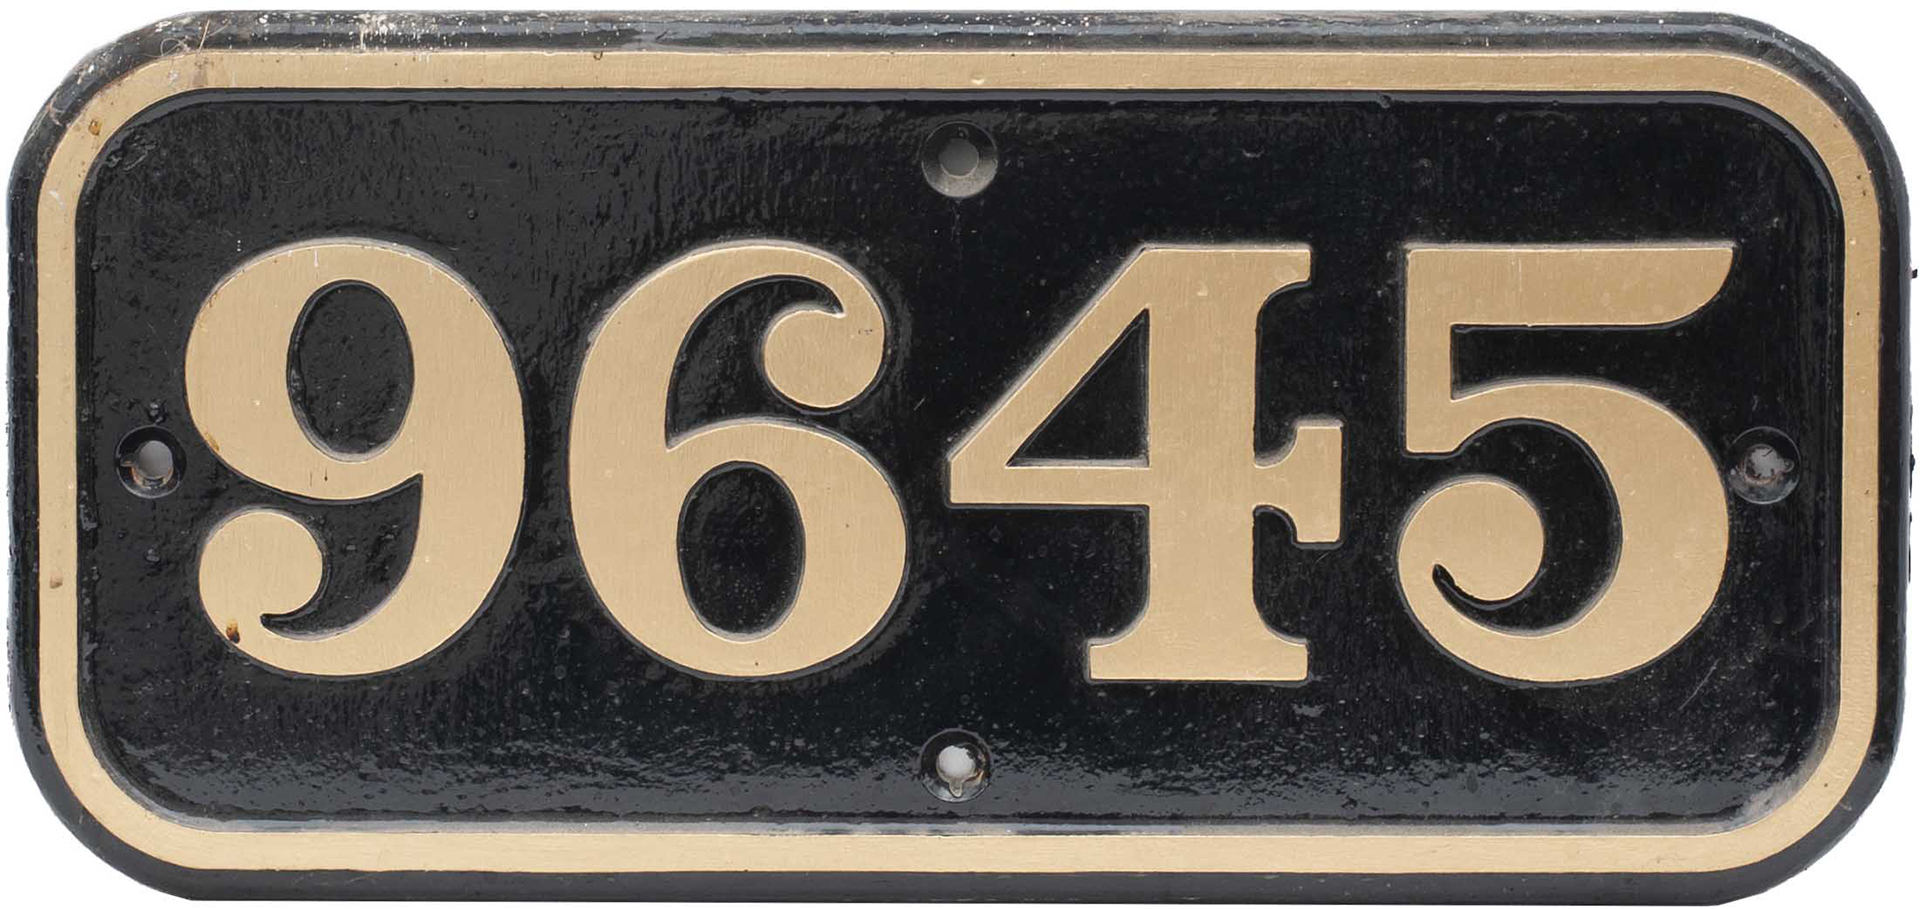 GWR cast iron cabside numberplate 9645 ex Collett 0-6-0 PT built at Swindon in 1946. Allocated to